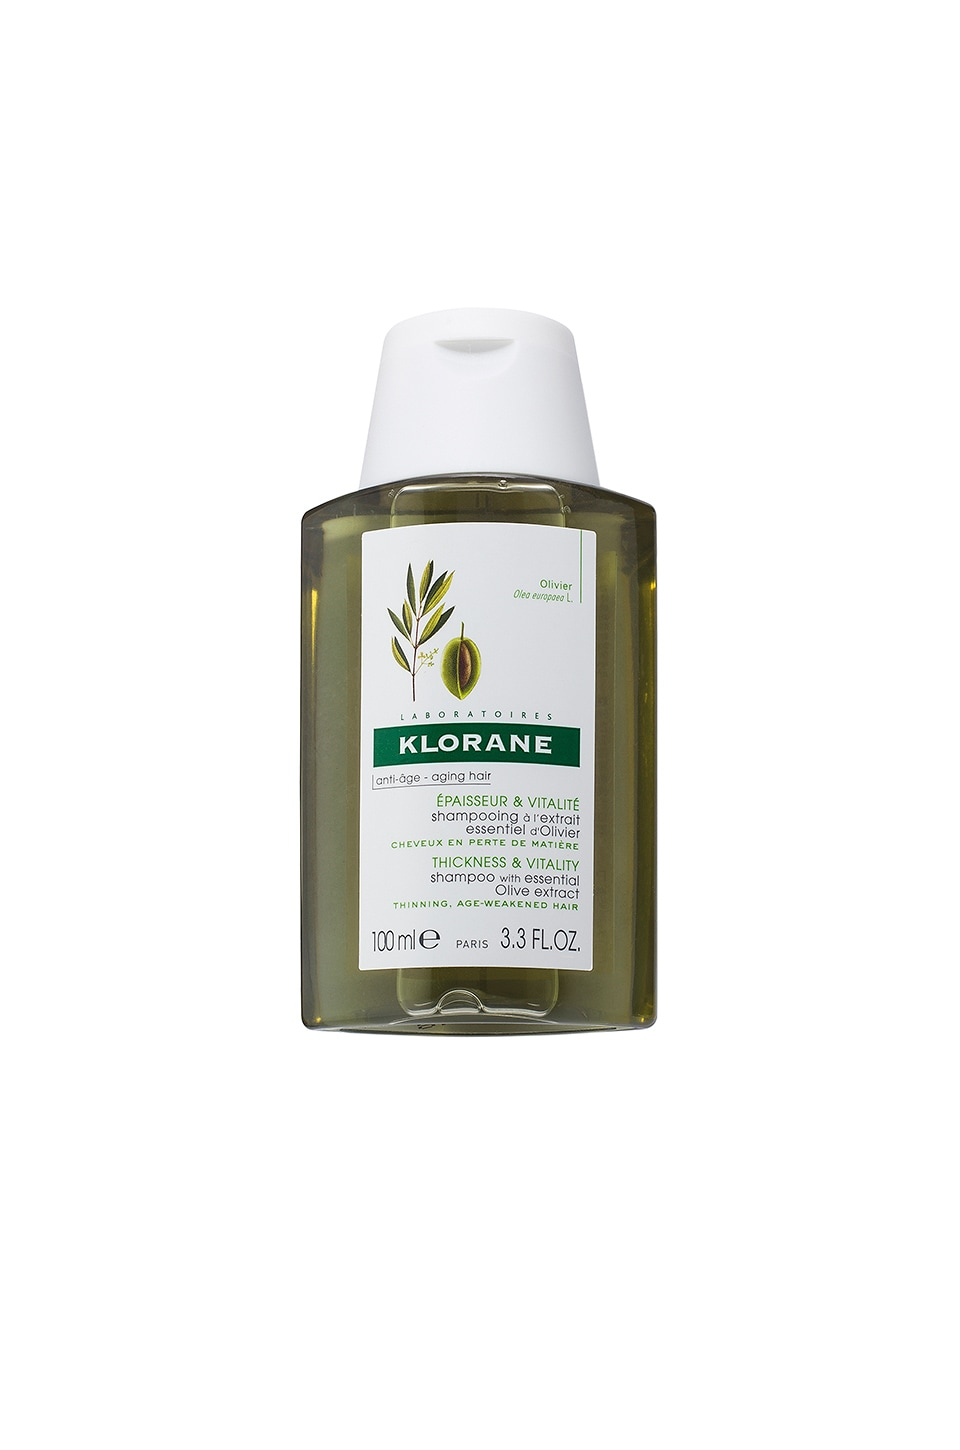 Travel Shampoo with Essential Olive Extract